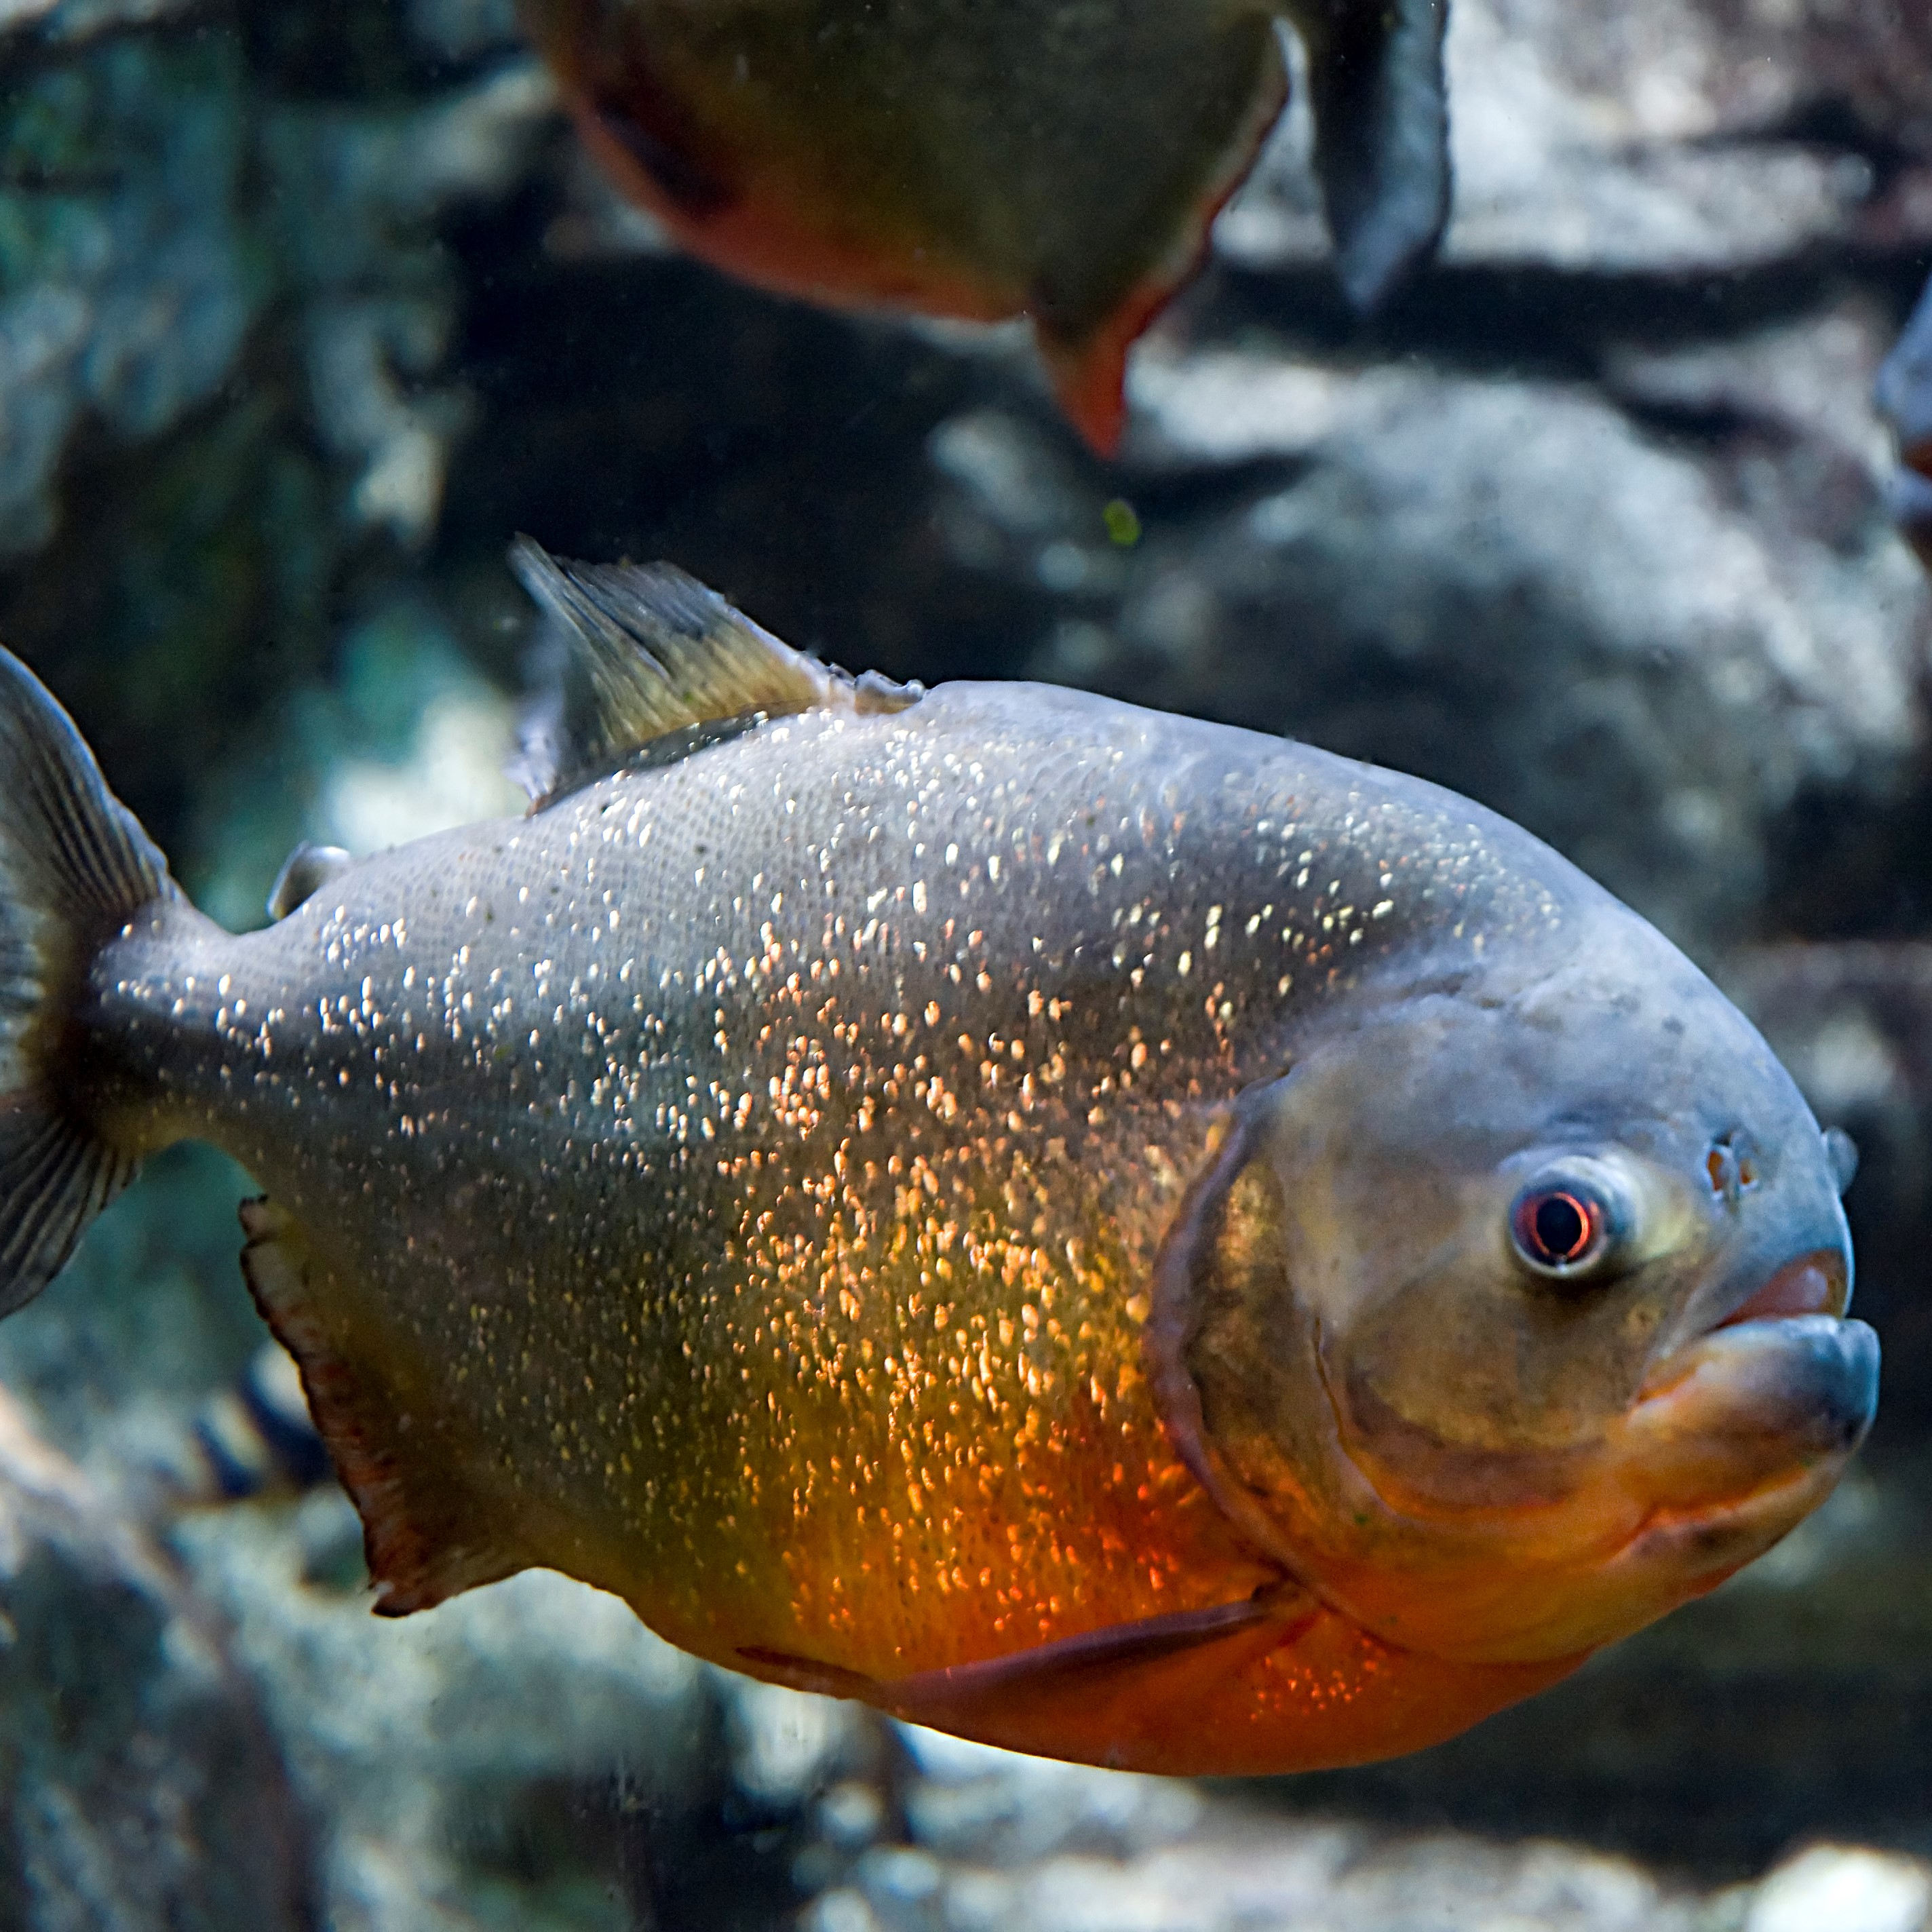 Red Bellied Piranha image